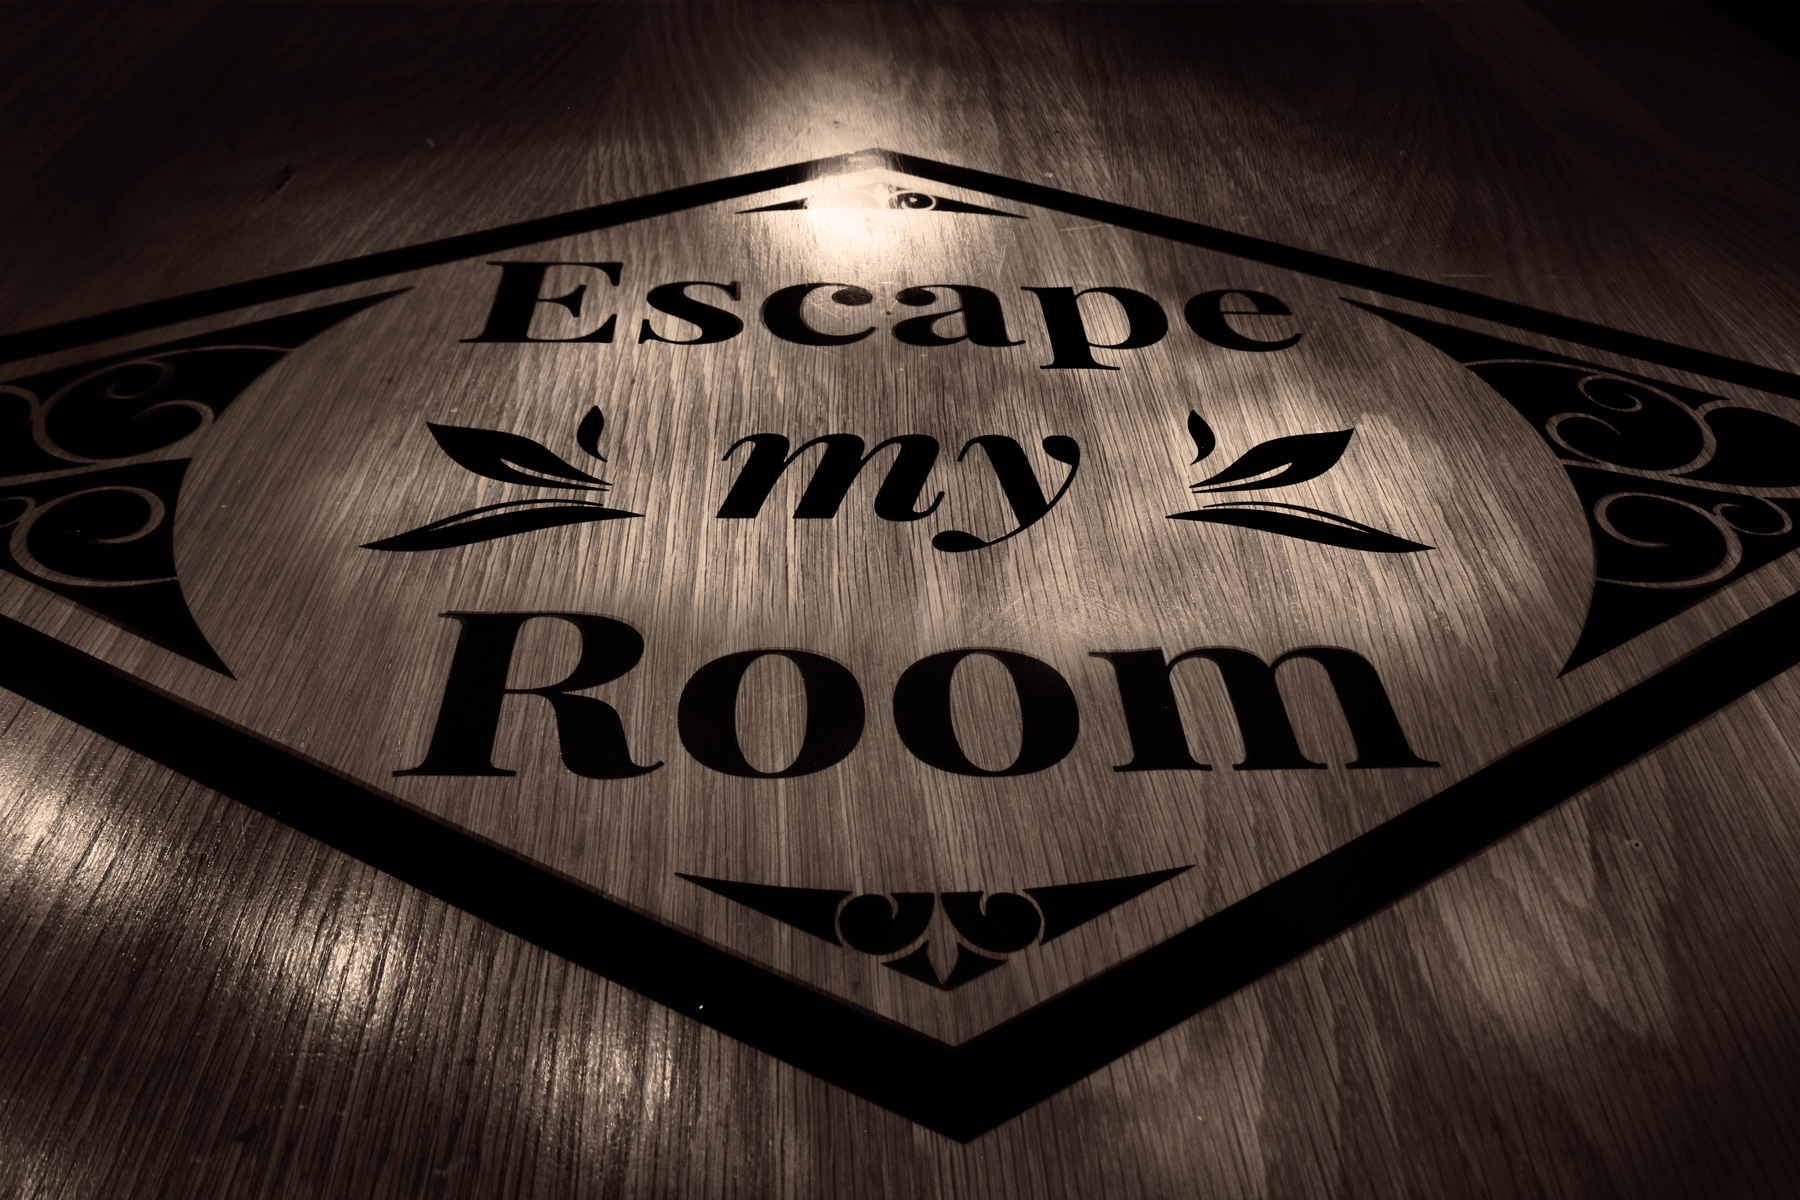 Escape My Room Opens In New Orleans. Cake Decorating Tools. Bohemian Decorating. Wedding Reception Table Decorations. Dallas Cowboys Bedroom Decor. Family Room Design Ideas. Decorating With Grey And Beige. Decorative Shelf Brackets Lowes. Decorated Candelabras